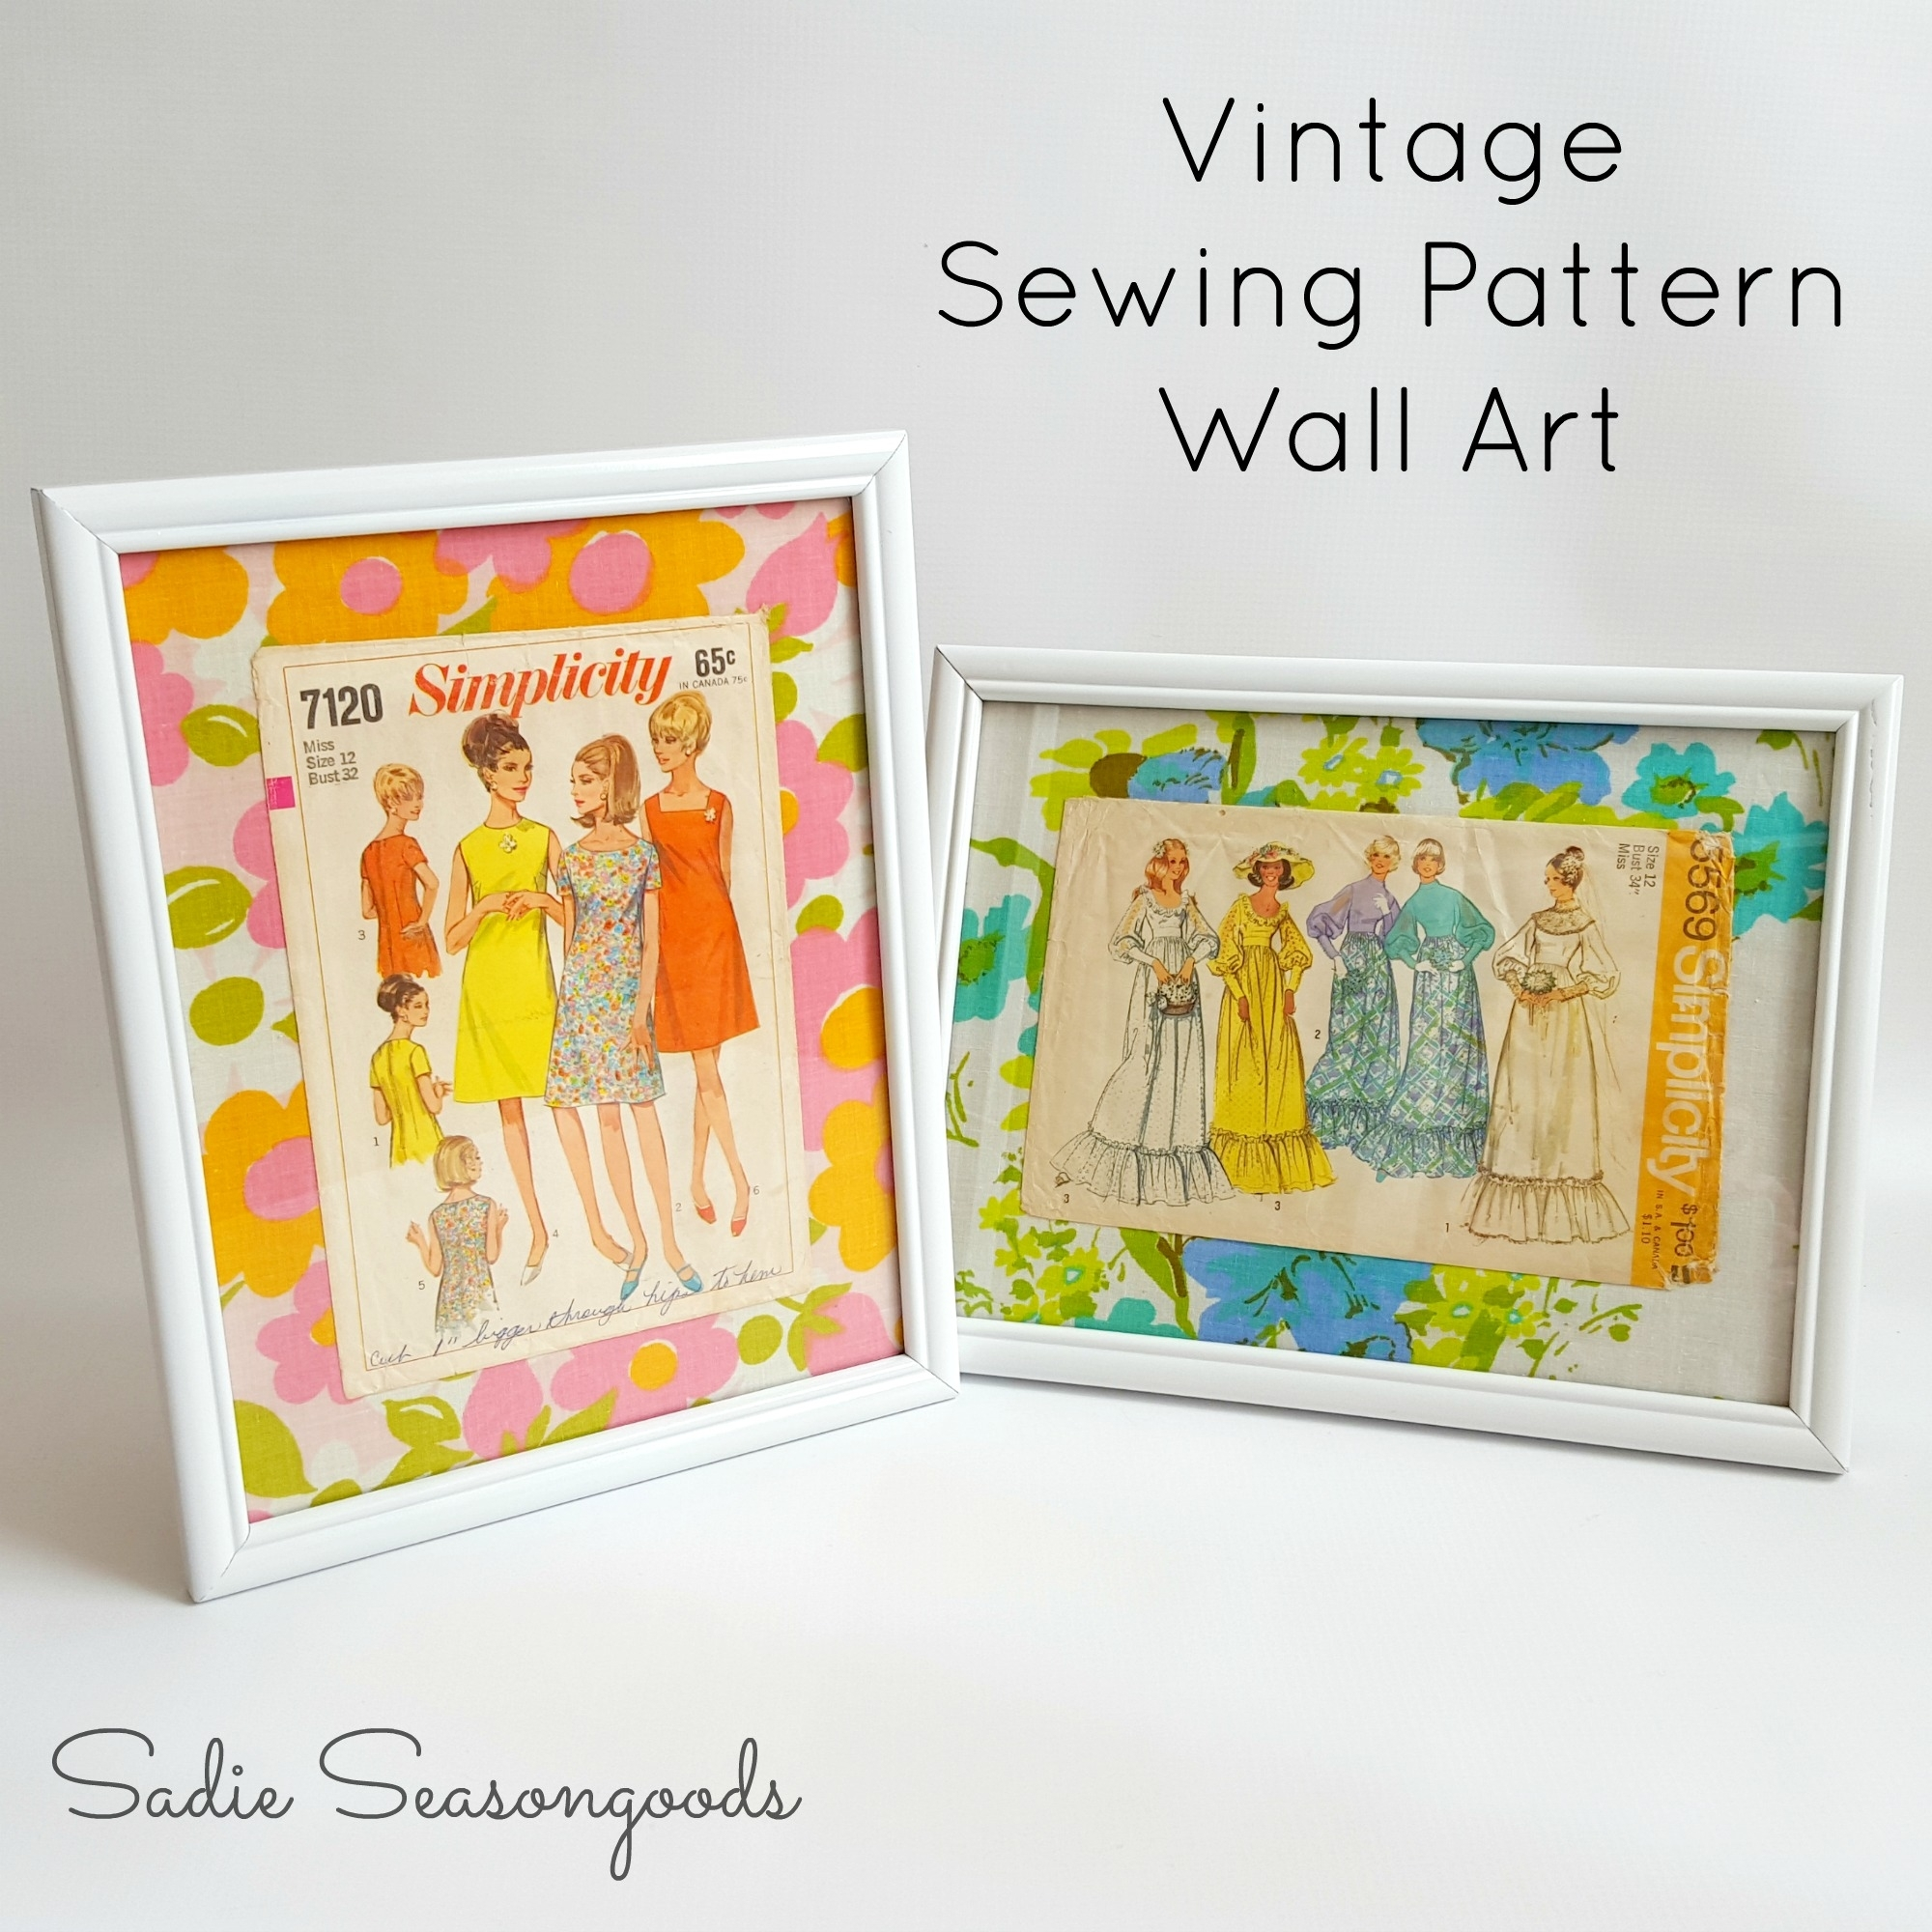 Fashion Wall Art Using Repurposed Vintage Sewing Patterns Throughout Most Recent Fabric Wall Art Patterns (View 6 of 15)